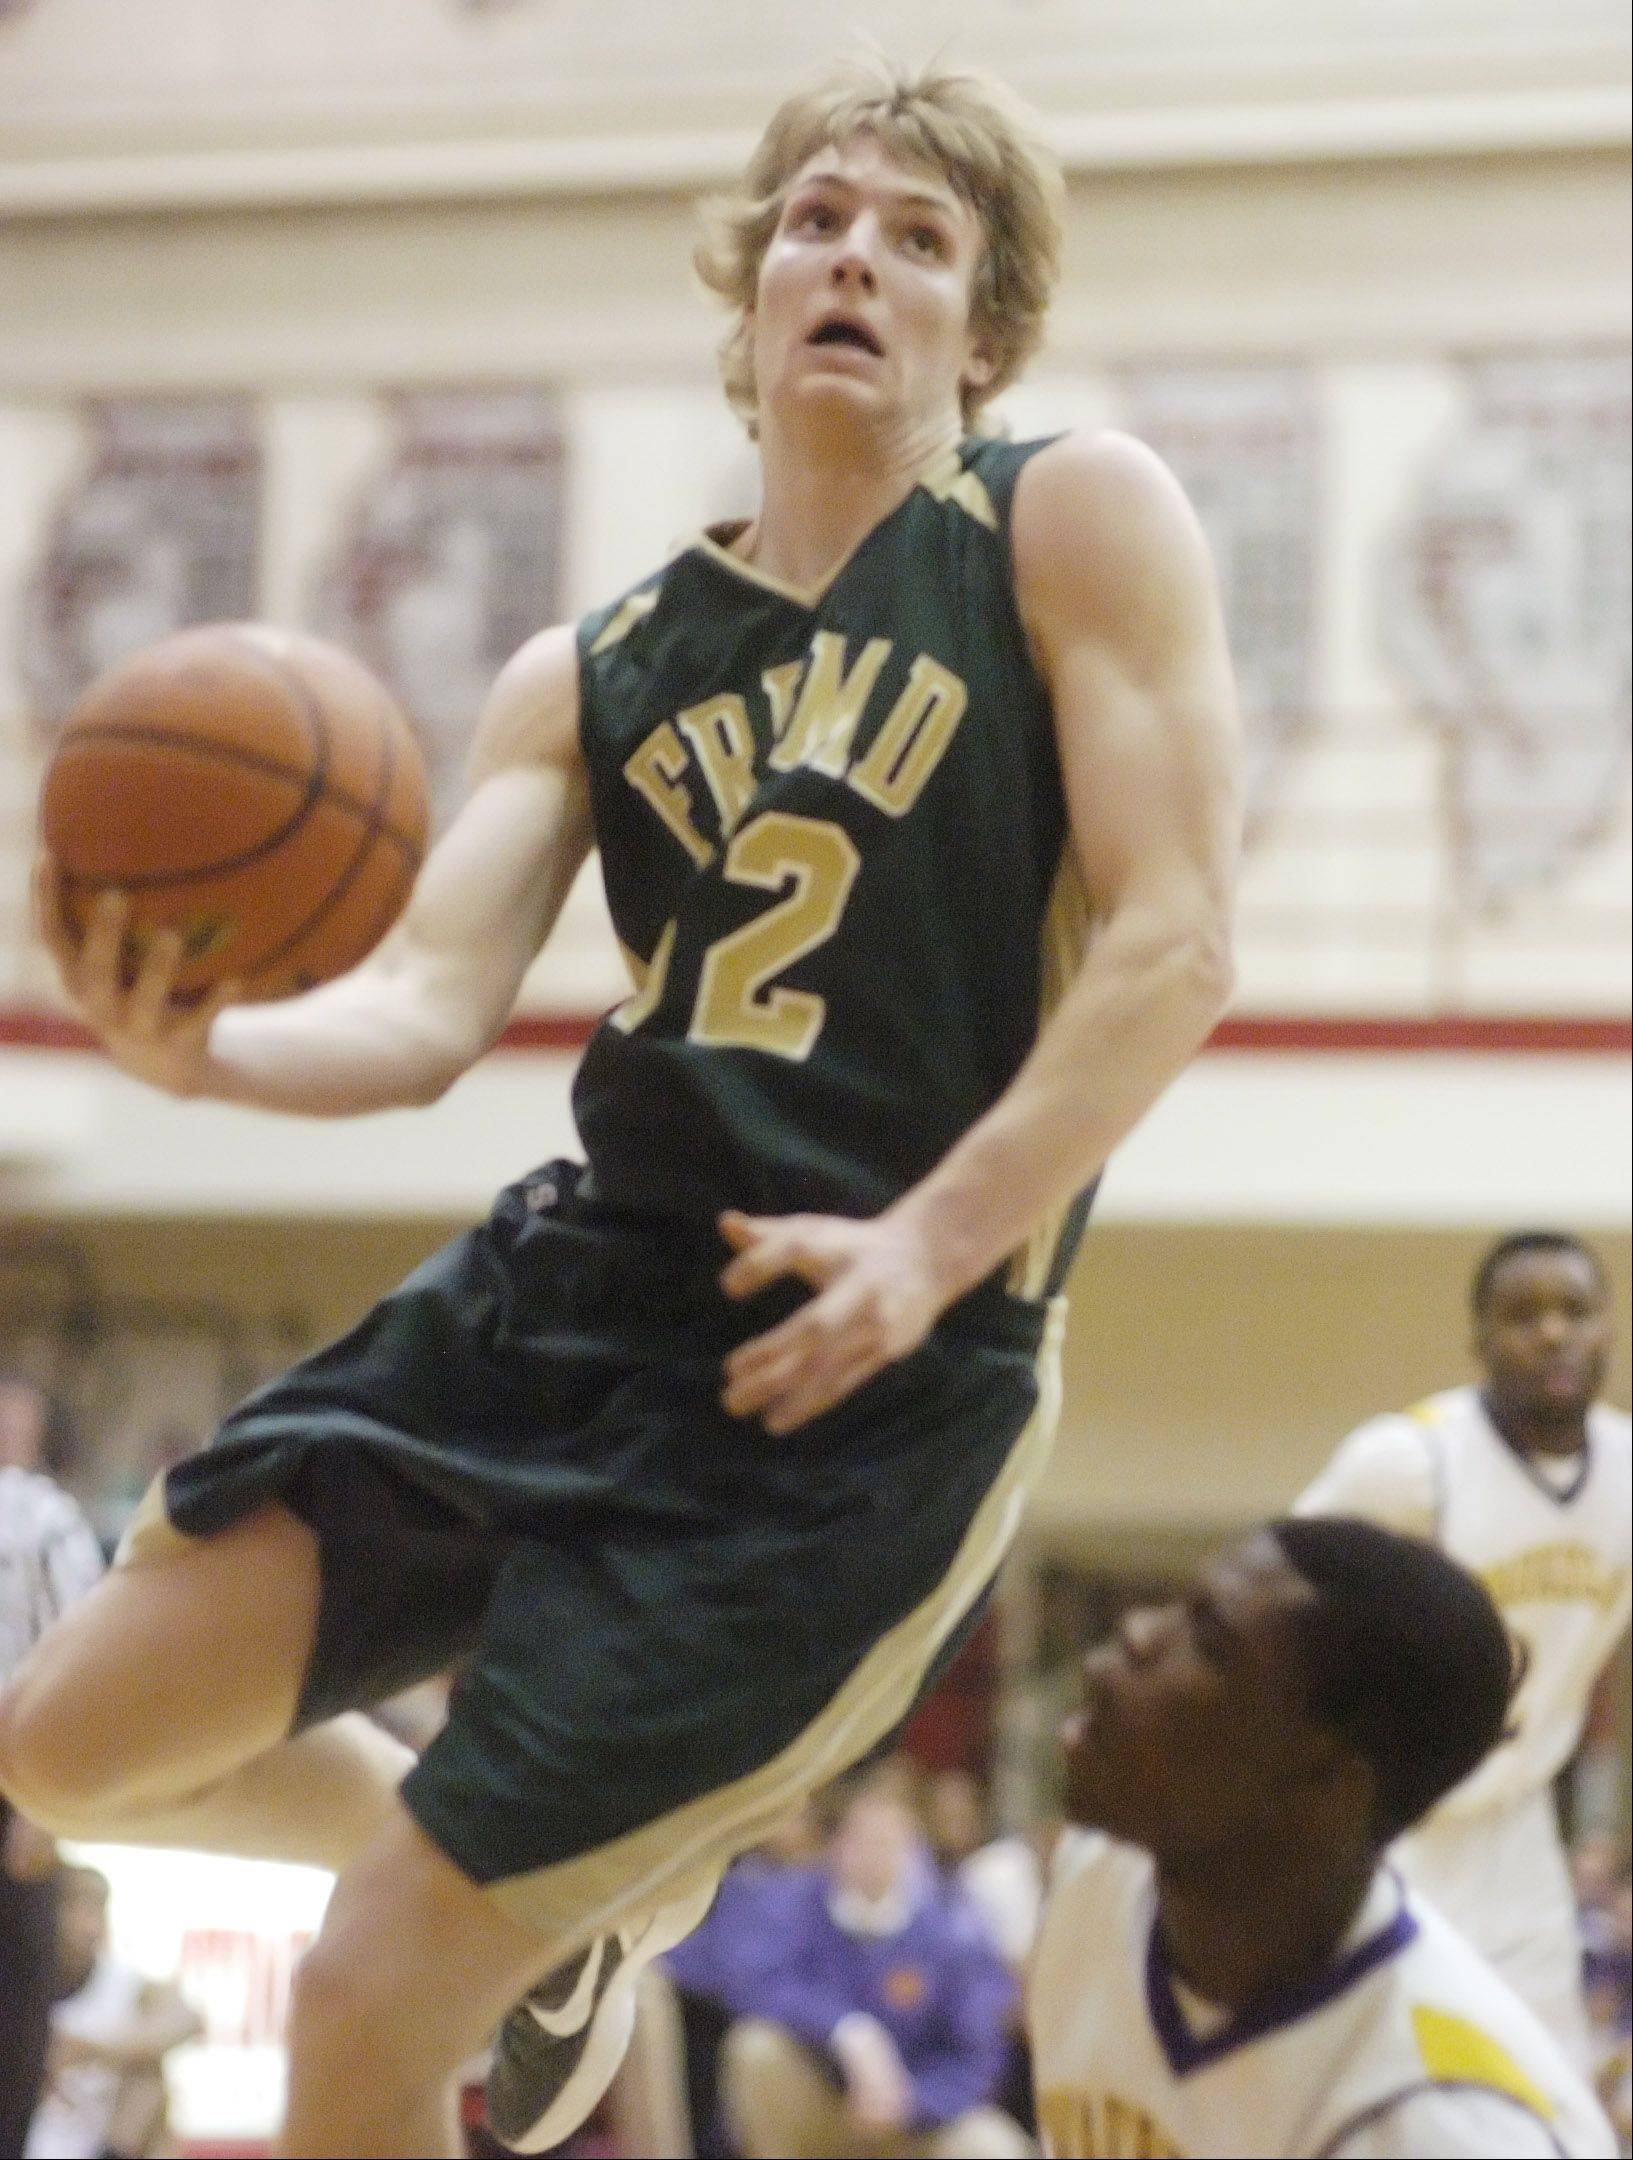 Fremd's Nate Serviss drives to the basket for a layup.